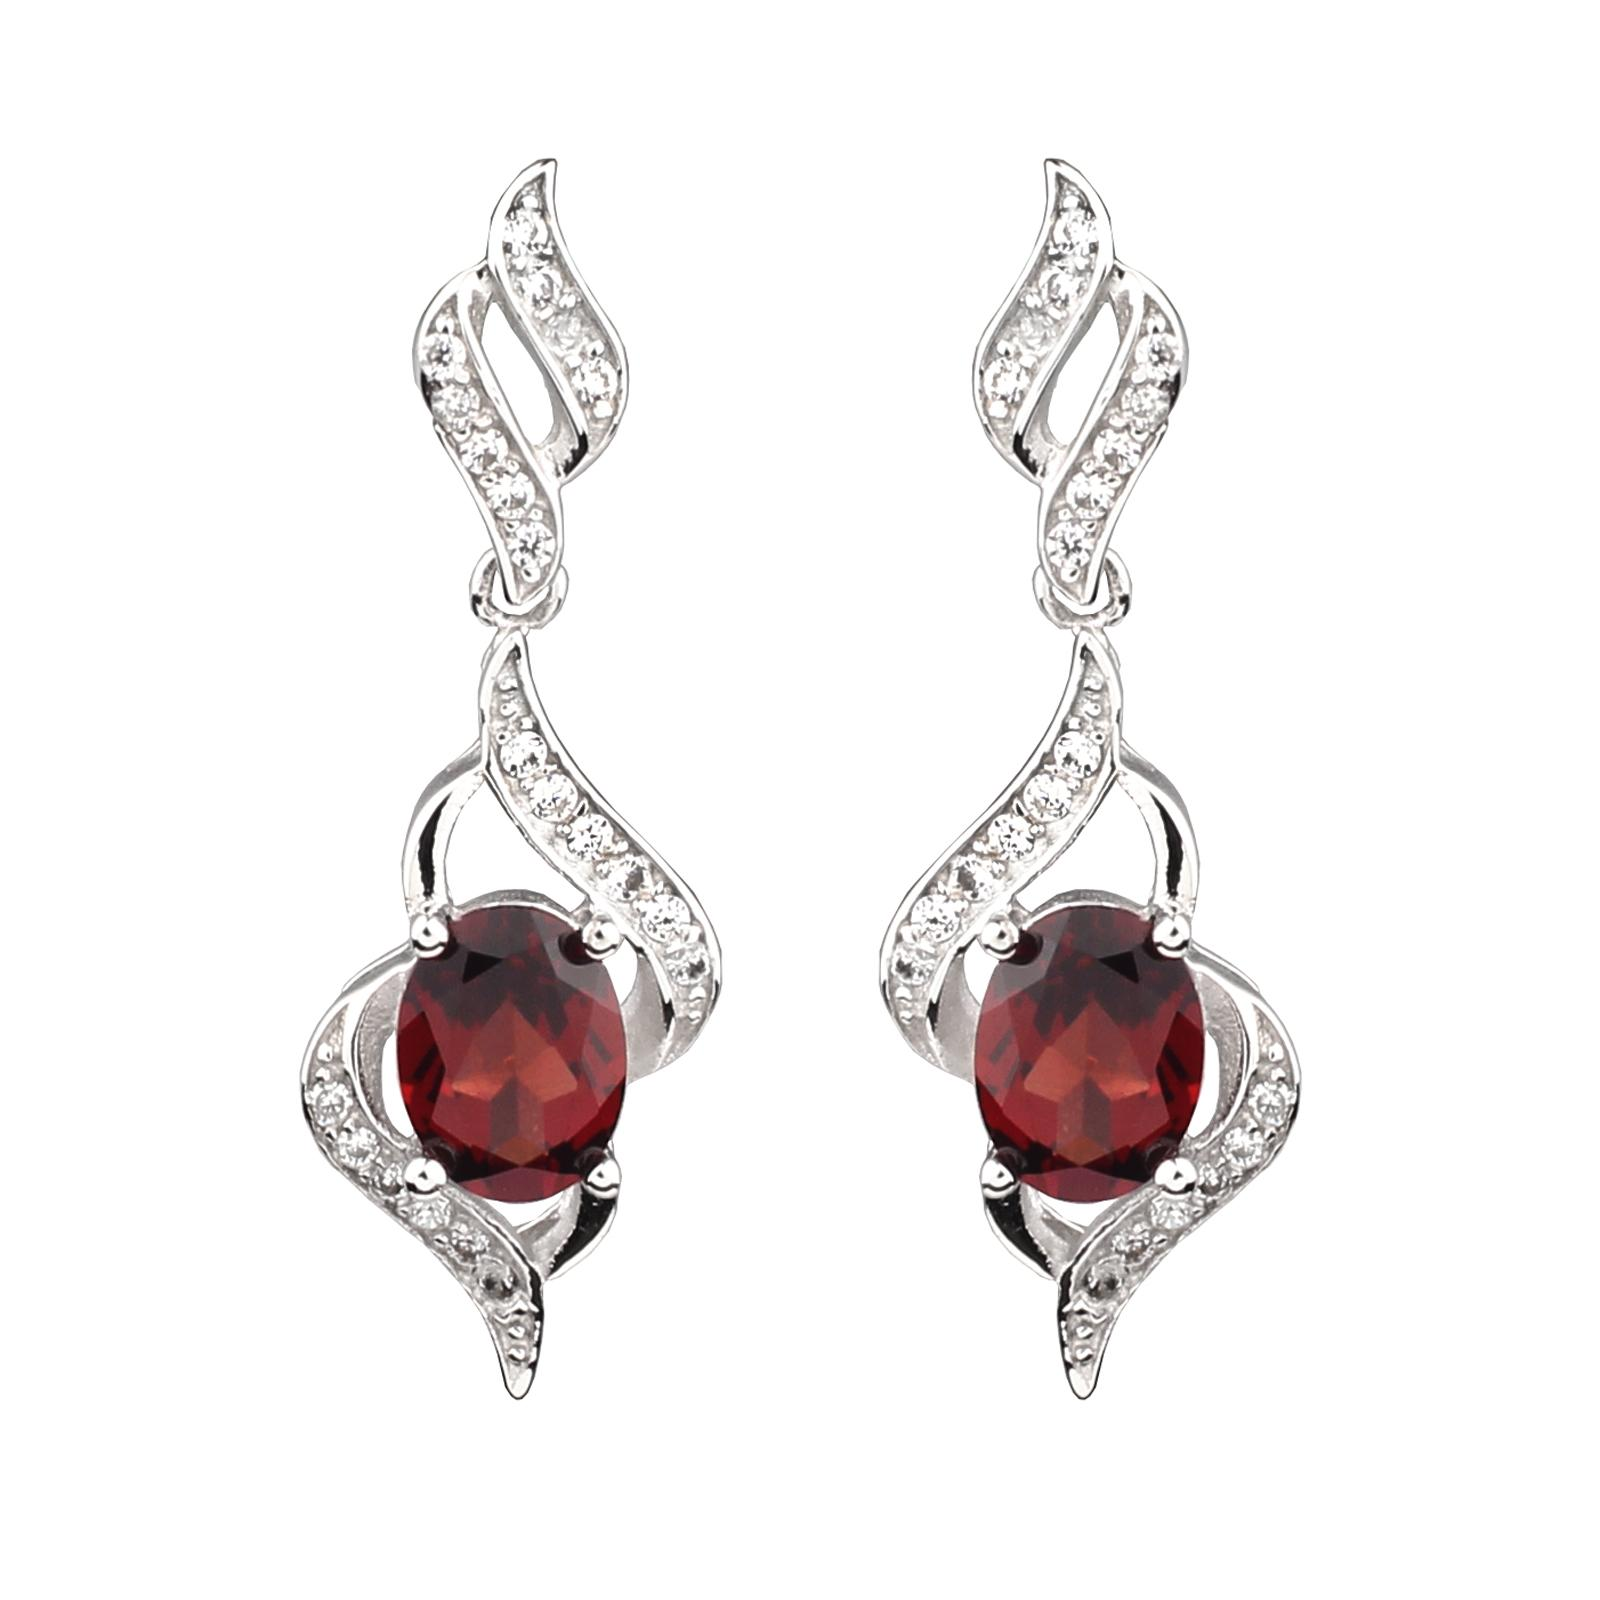 Jewelry & Watches Natural Red Ruby Emerald 925 Silver Earrings Necklace Set Jewelry Making Things Convenient For Customers Fine Jewelry